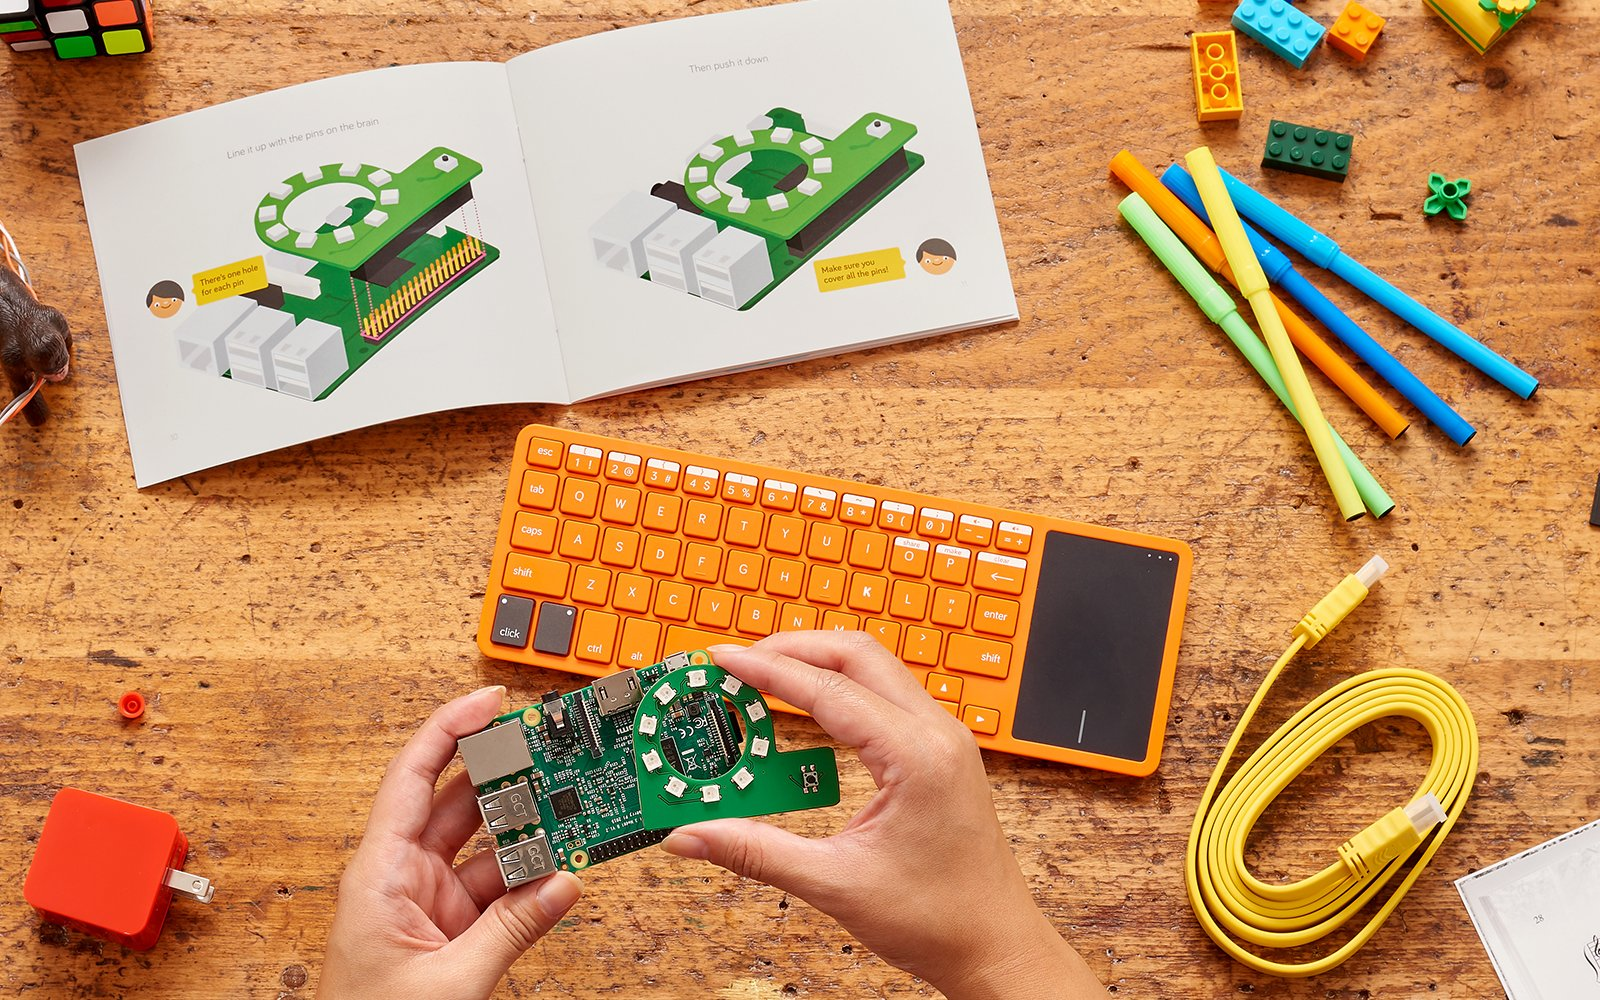 'Kano Computer Kit 2017 – Make a computer, learn to code by Kano (Image #4)